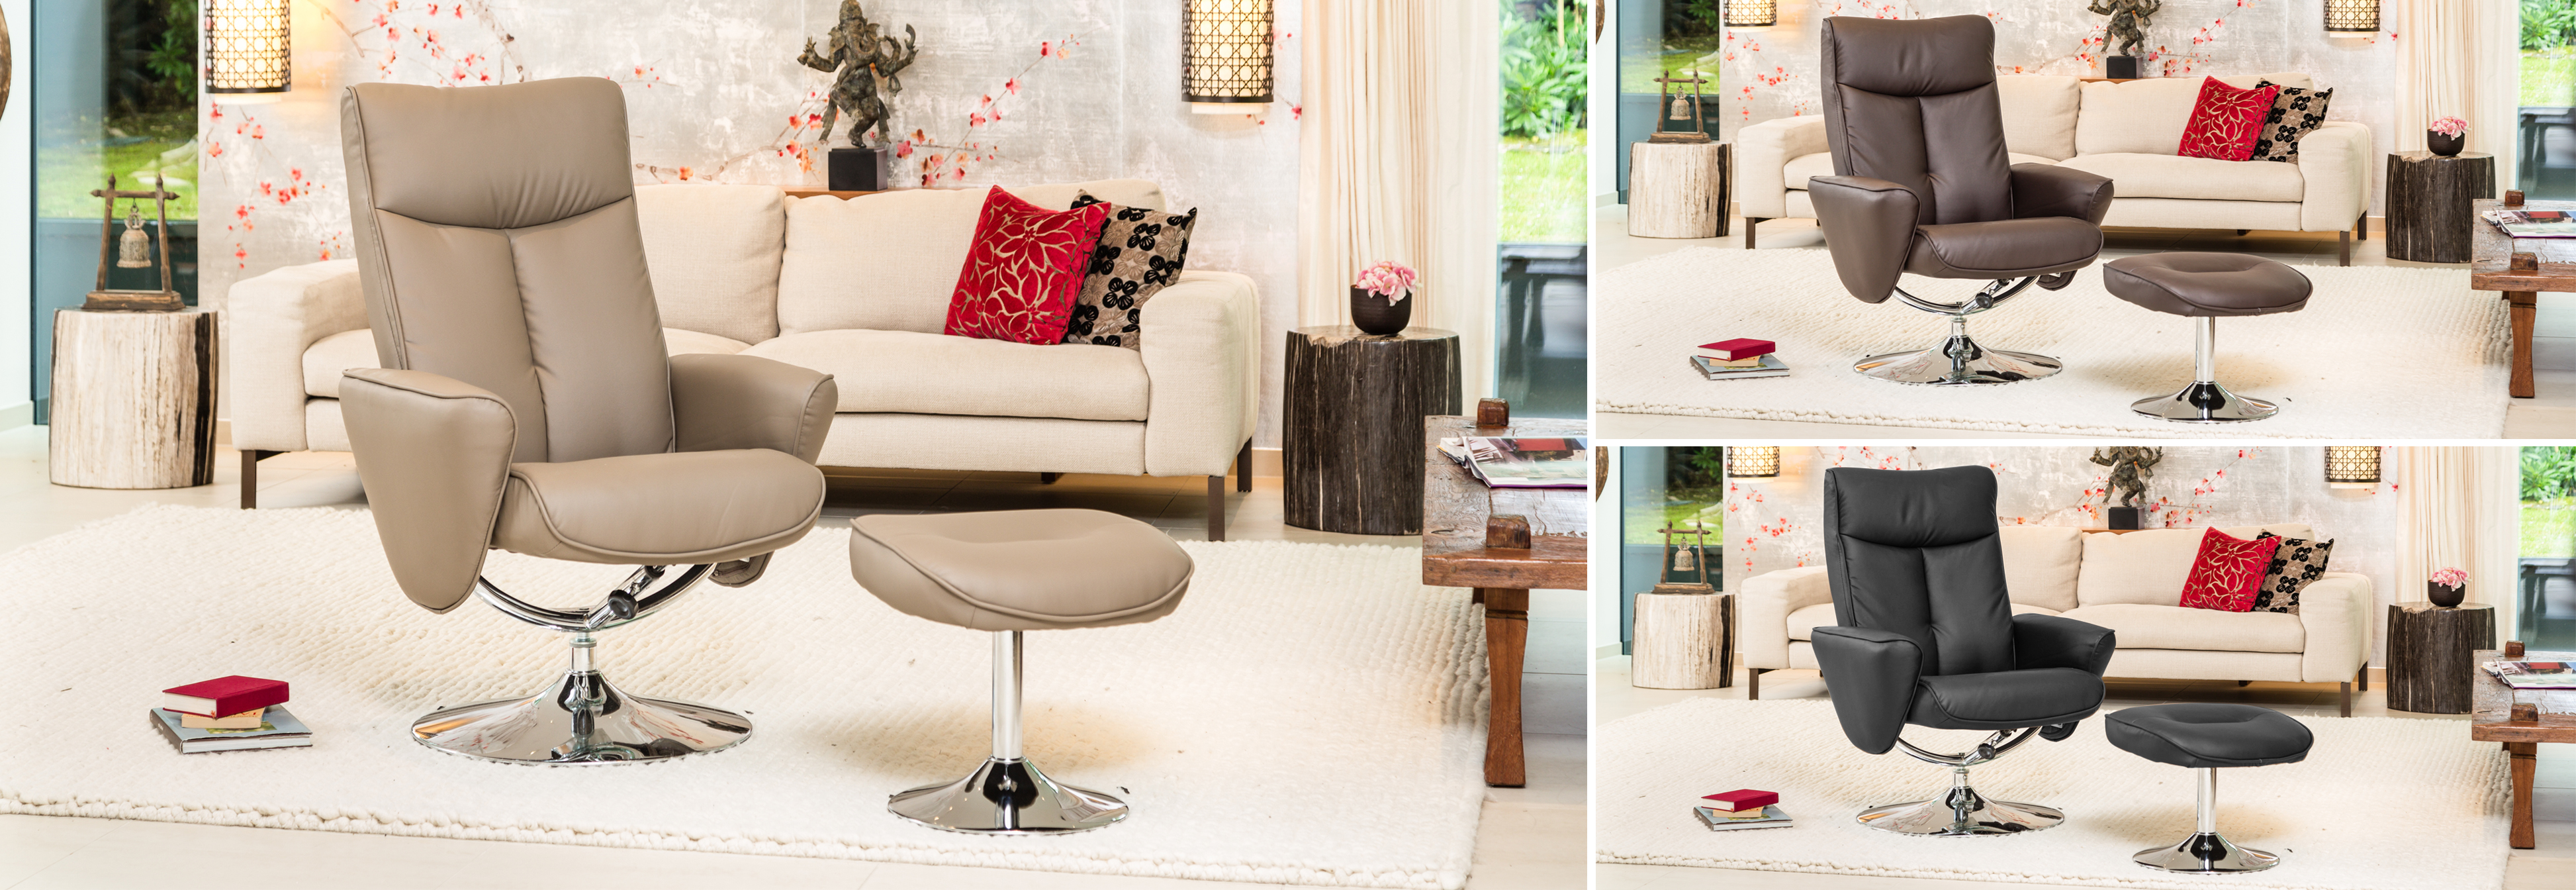 Deva Swivel Chair Beige